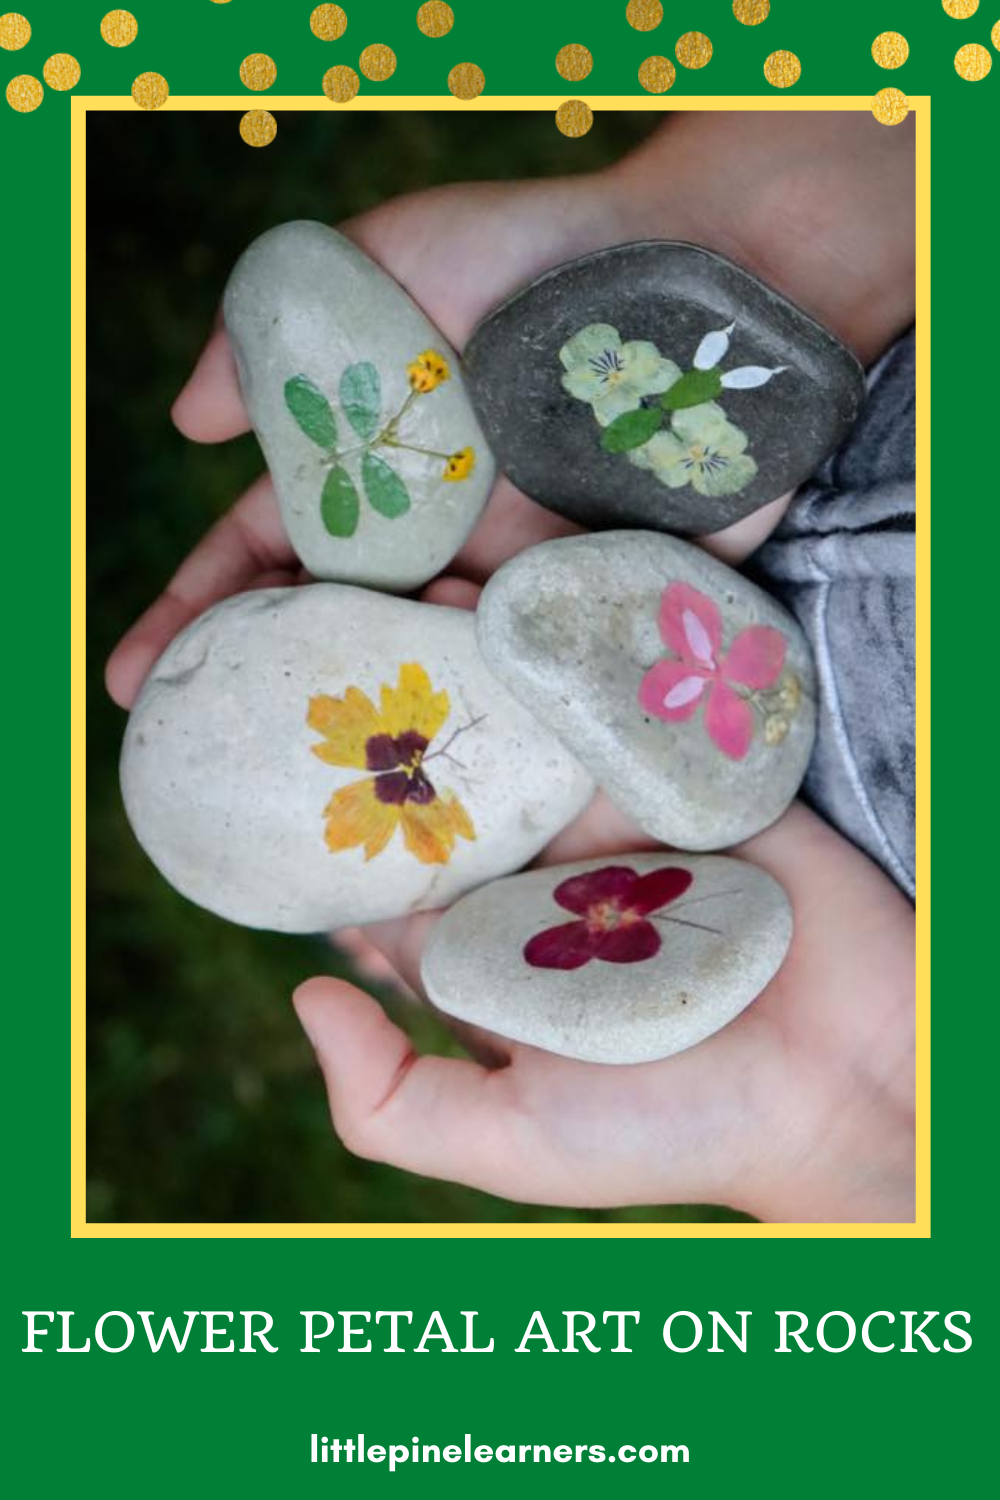 Collect flowers and make beautiful flower petal art with kids!